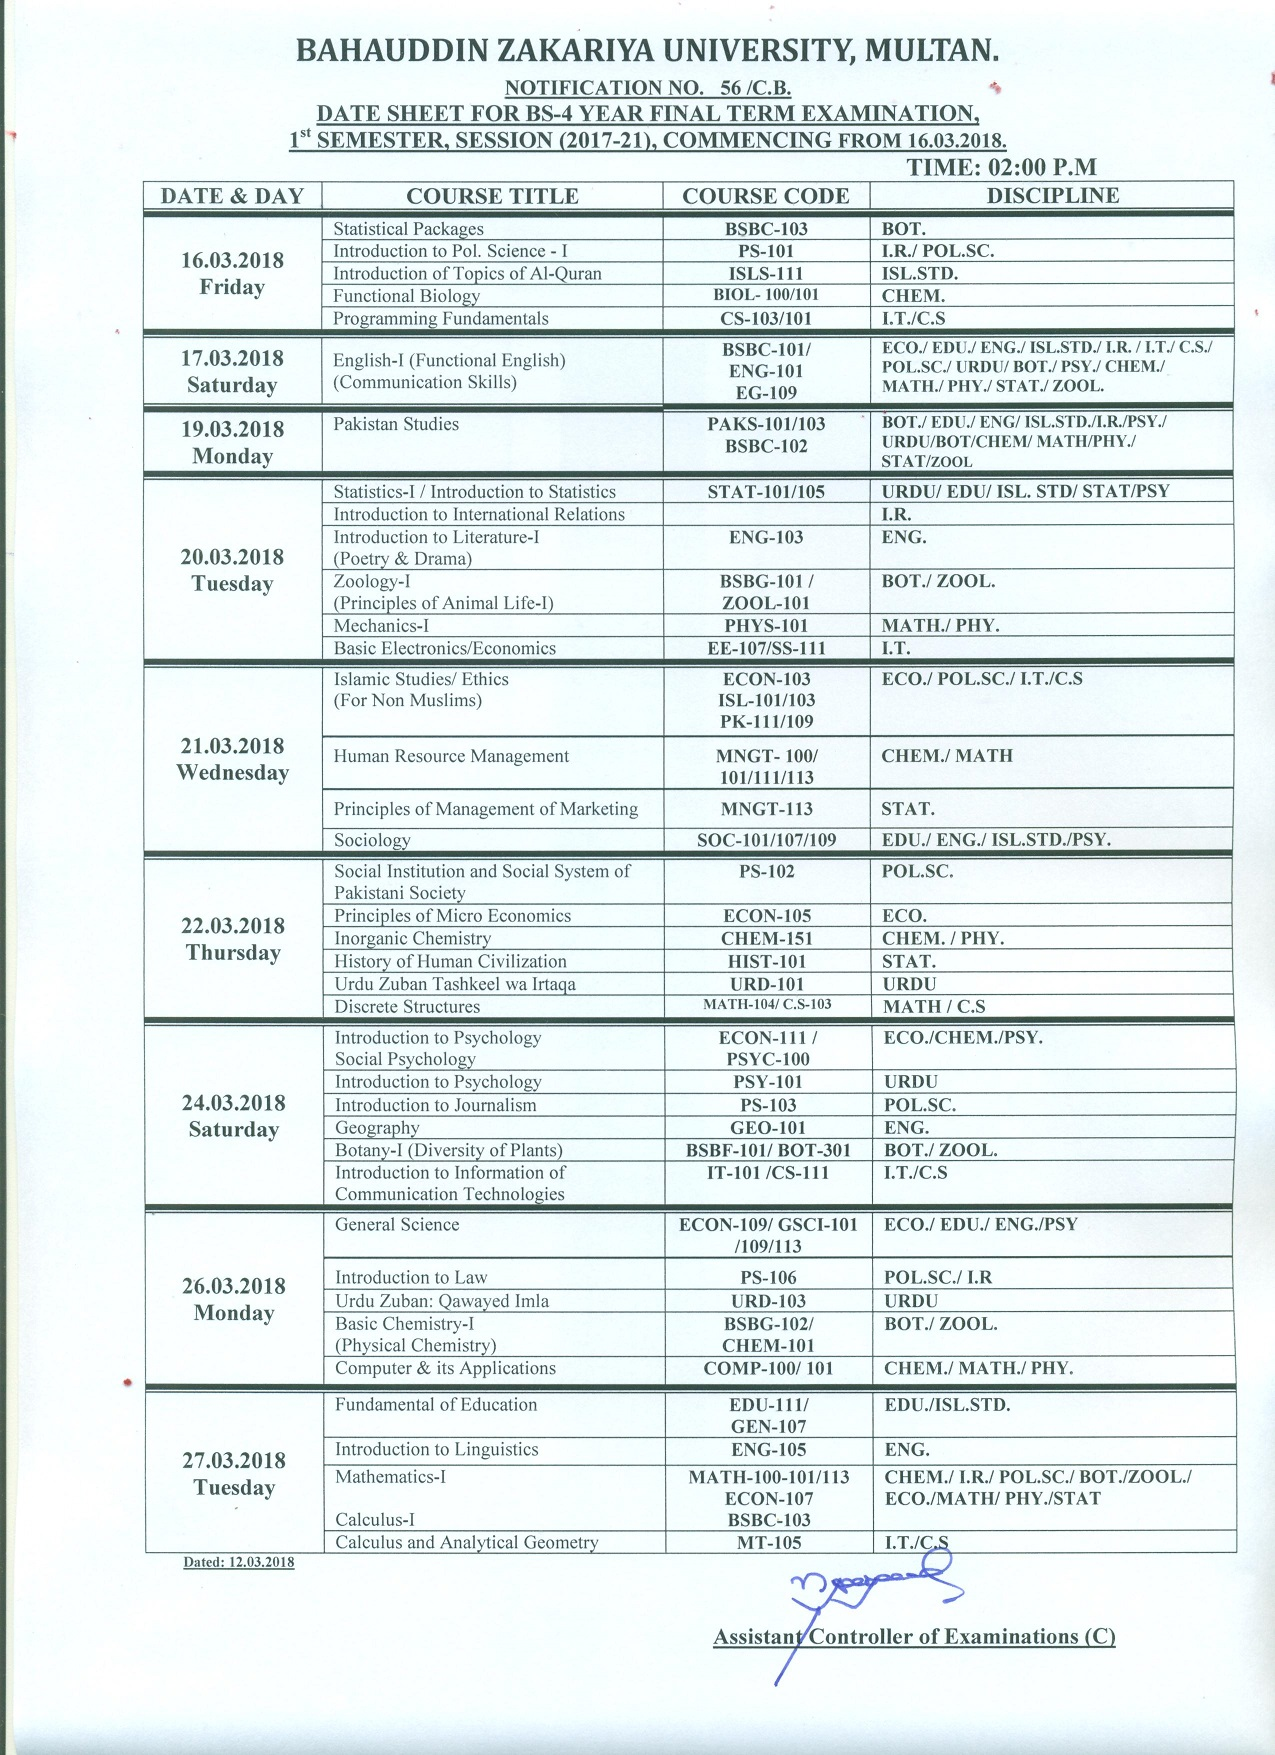 Bahauddin Zakariya University Date Sheet 2018 bzu Annual